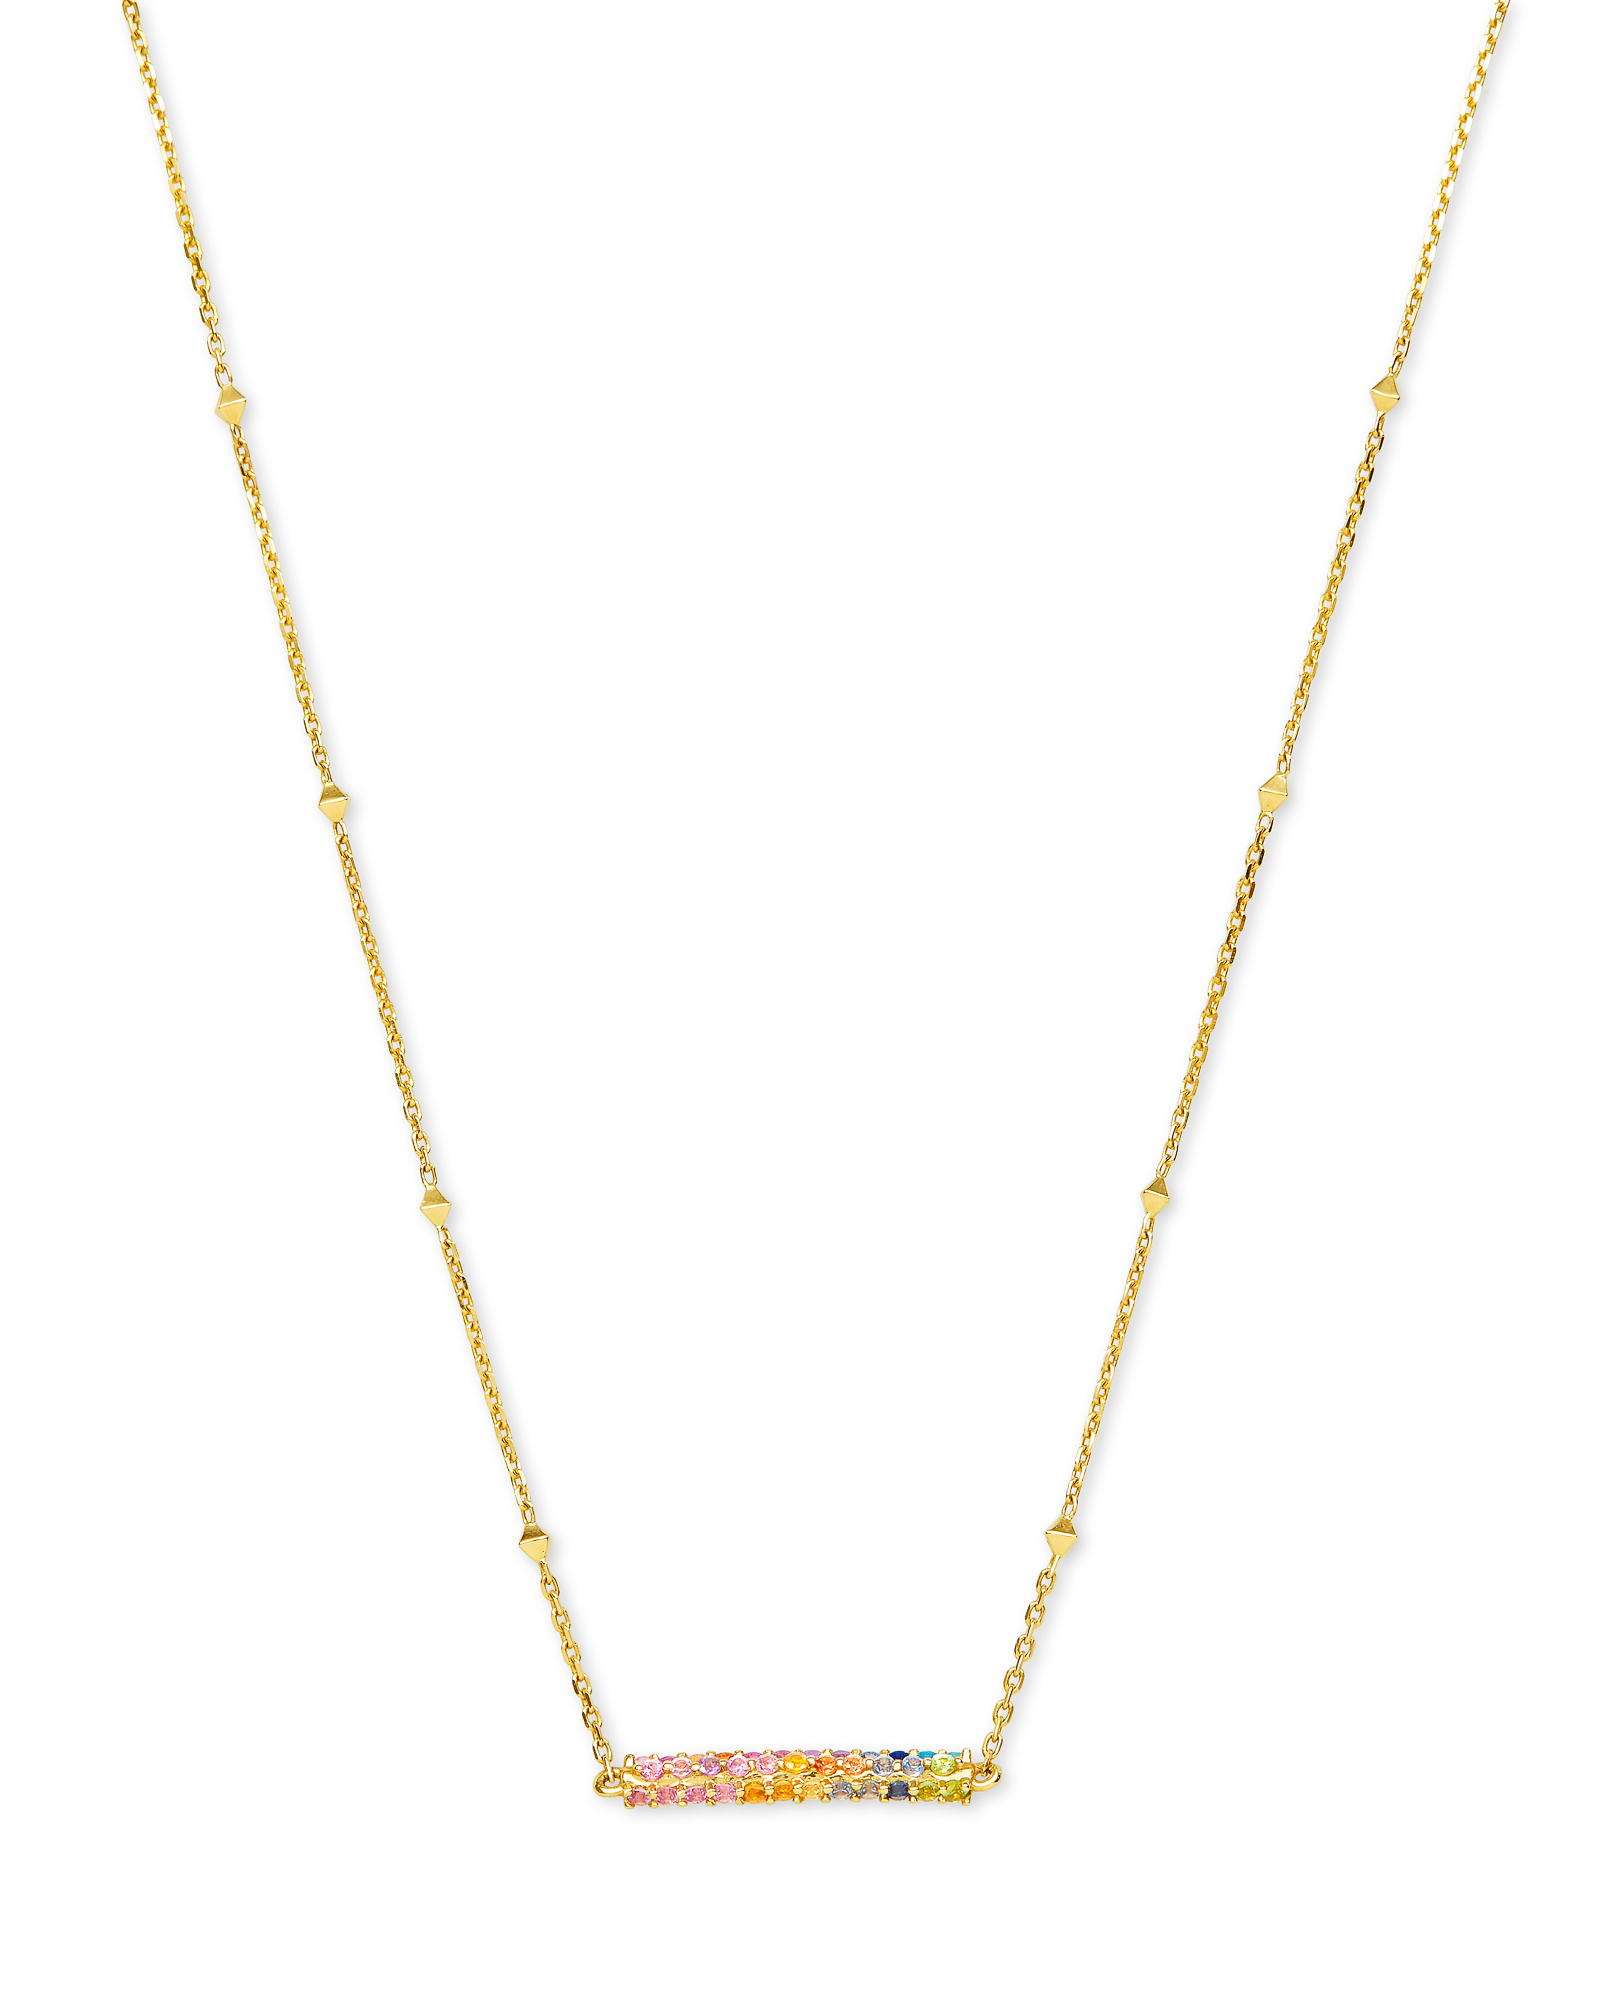 Remington 14k Yellow Gold Pendant Necklace in Multicolor